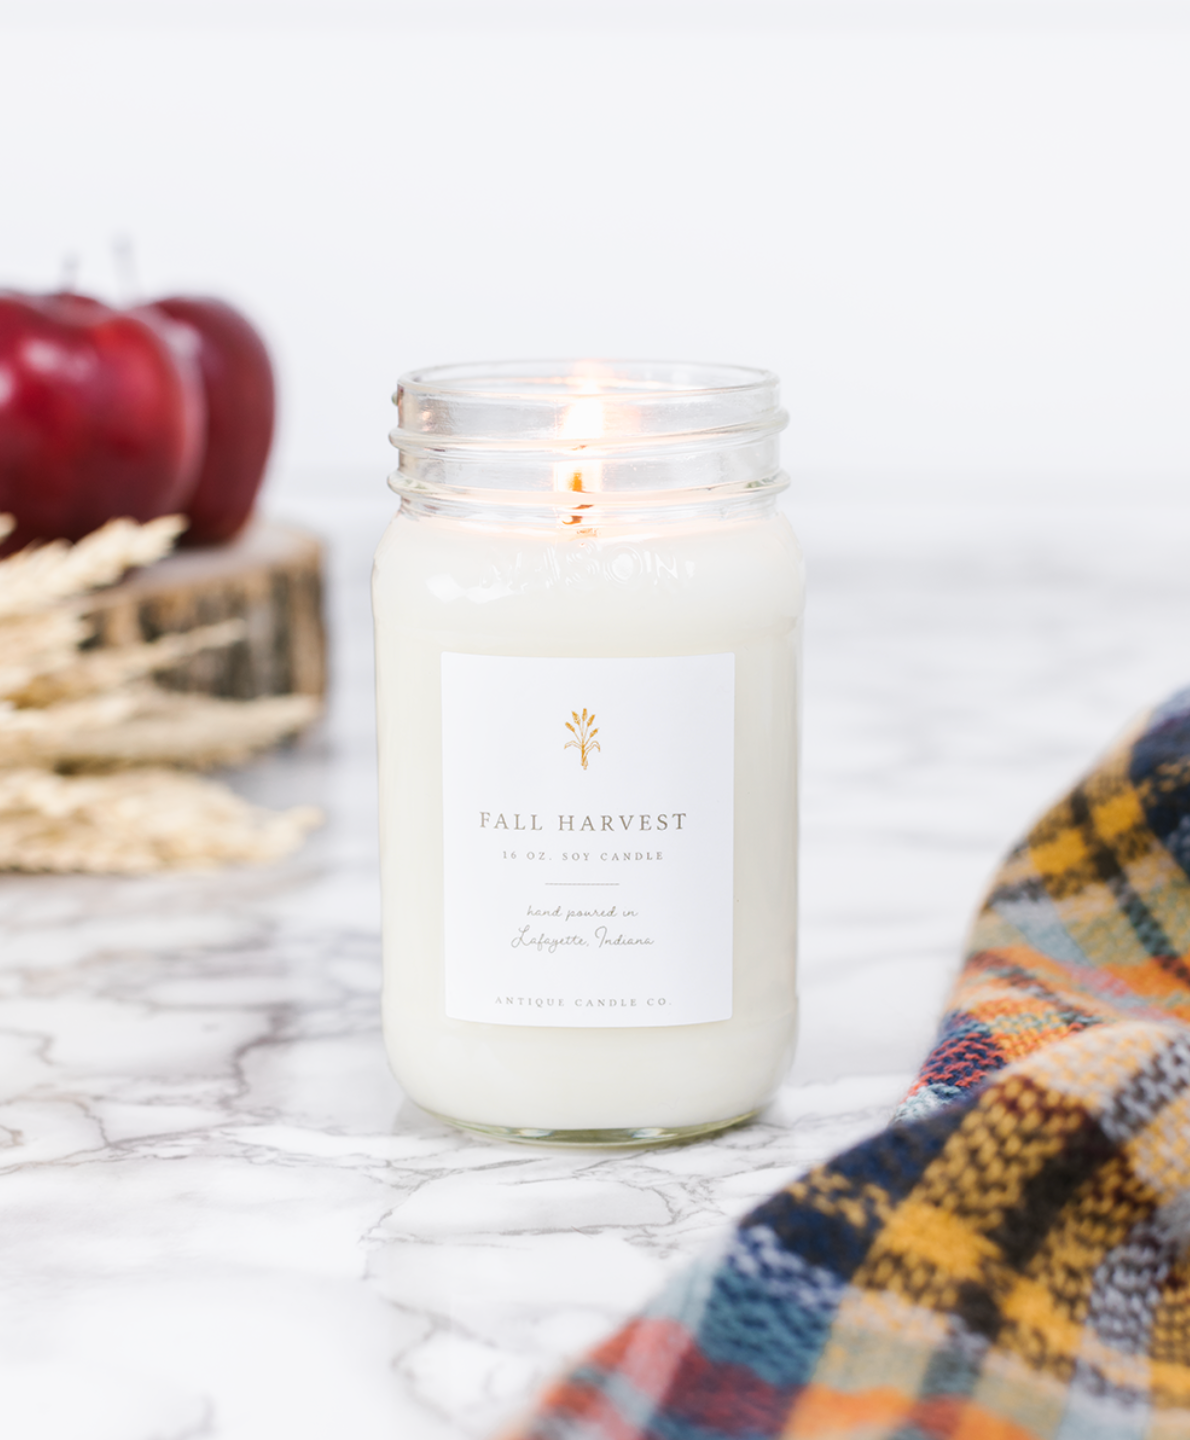 Fall Harvest - Antique Candle Co.